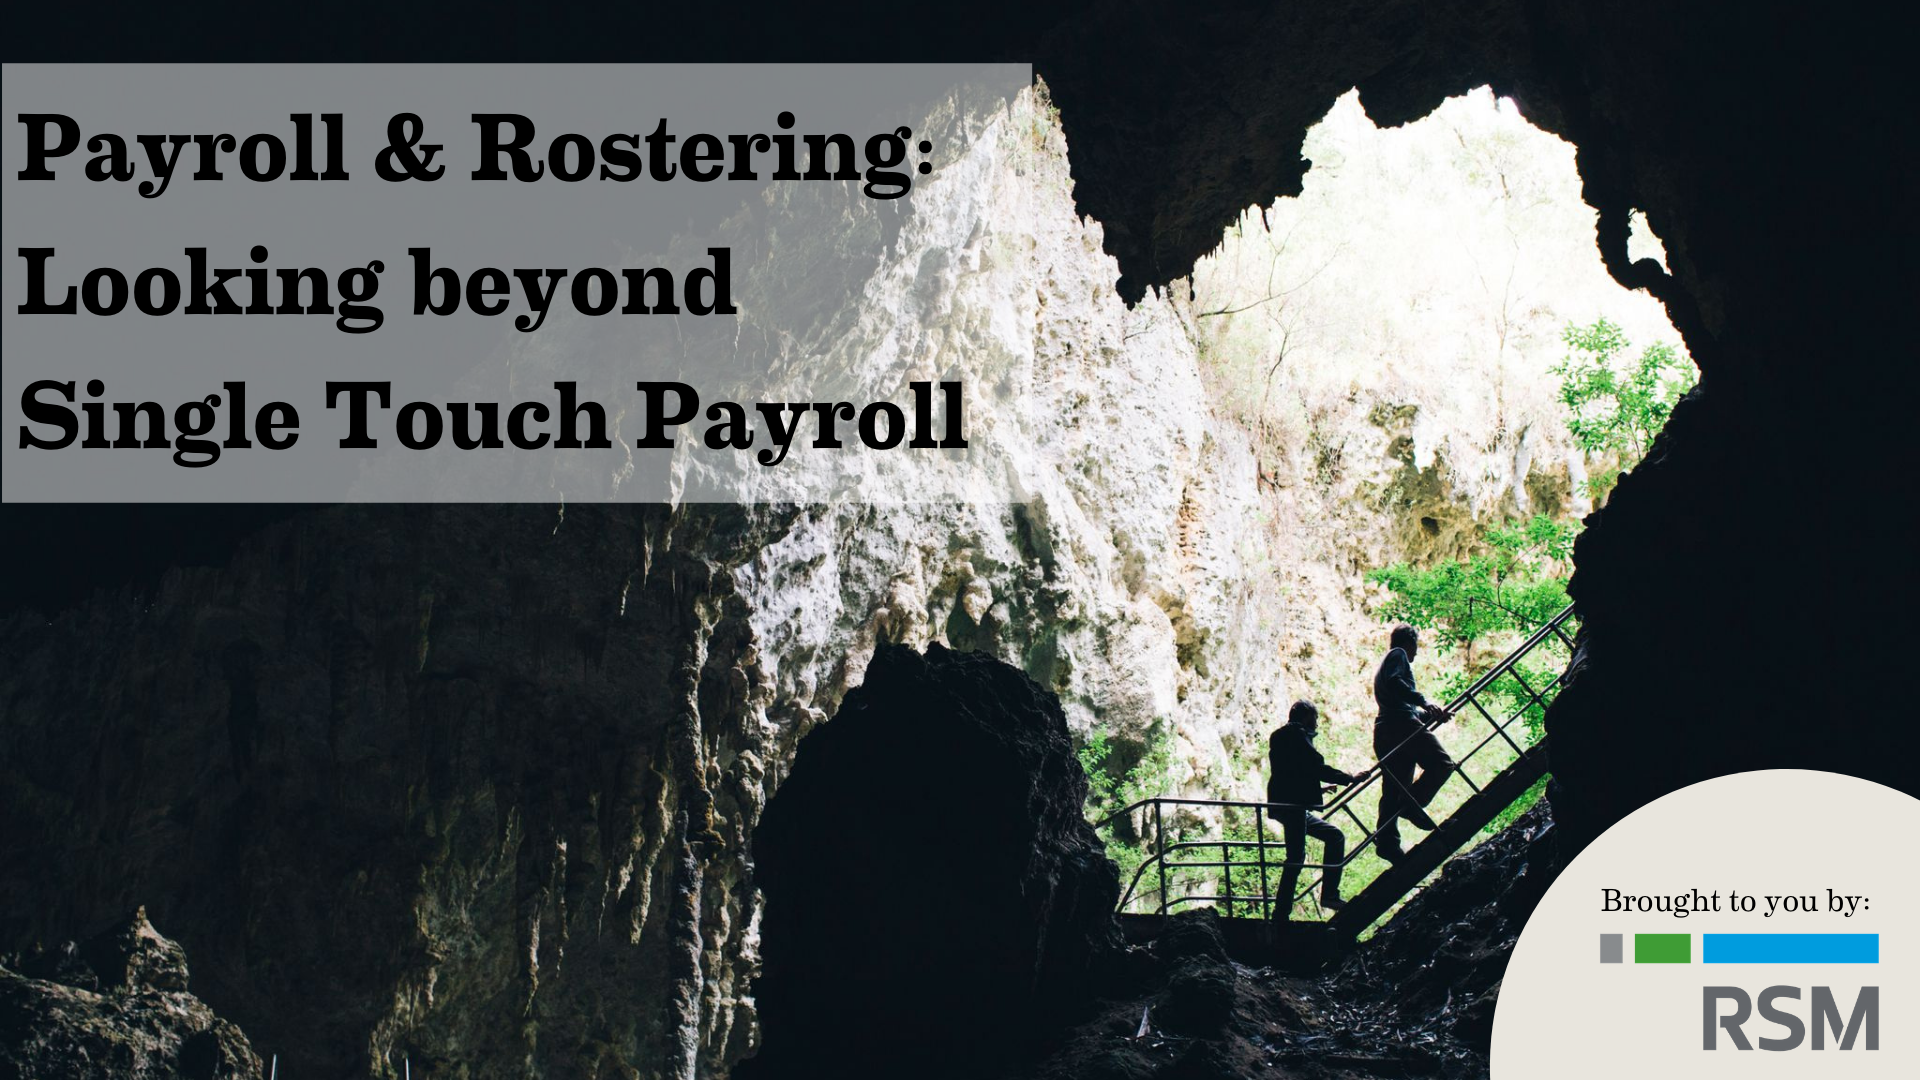 RSM Australia: Payroll & Rostering – Looking beyond Single Touch Payroll